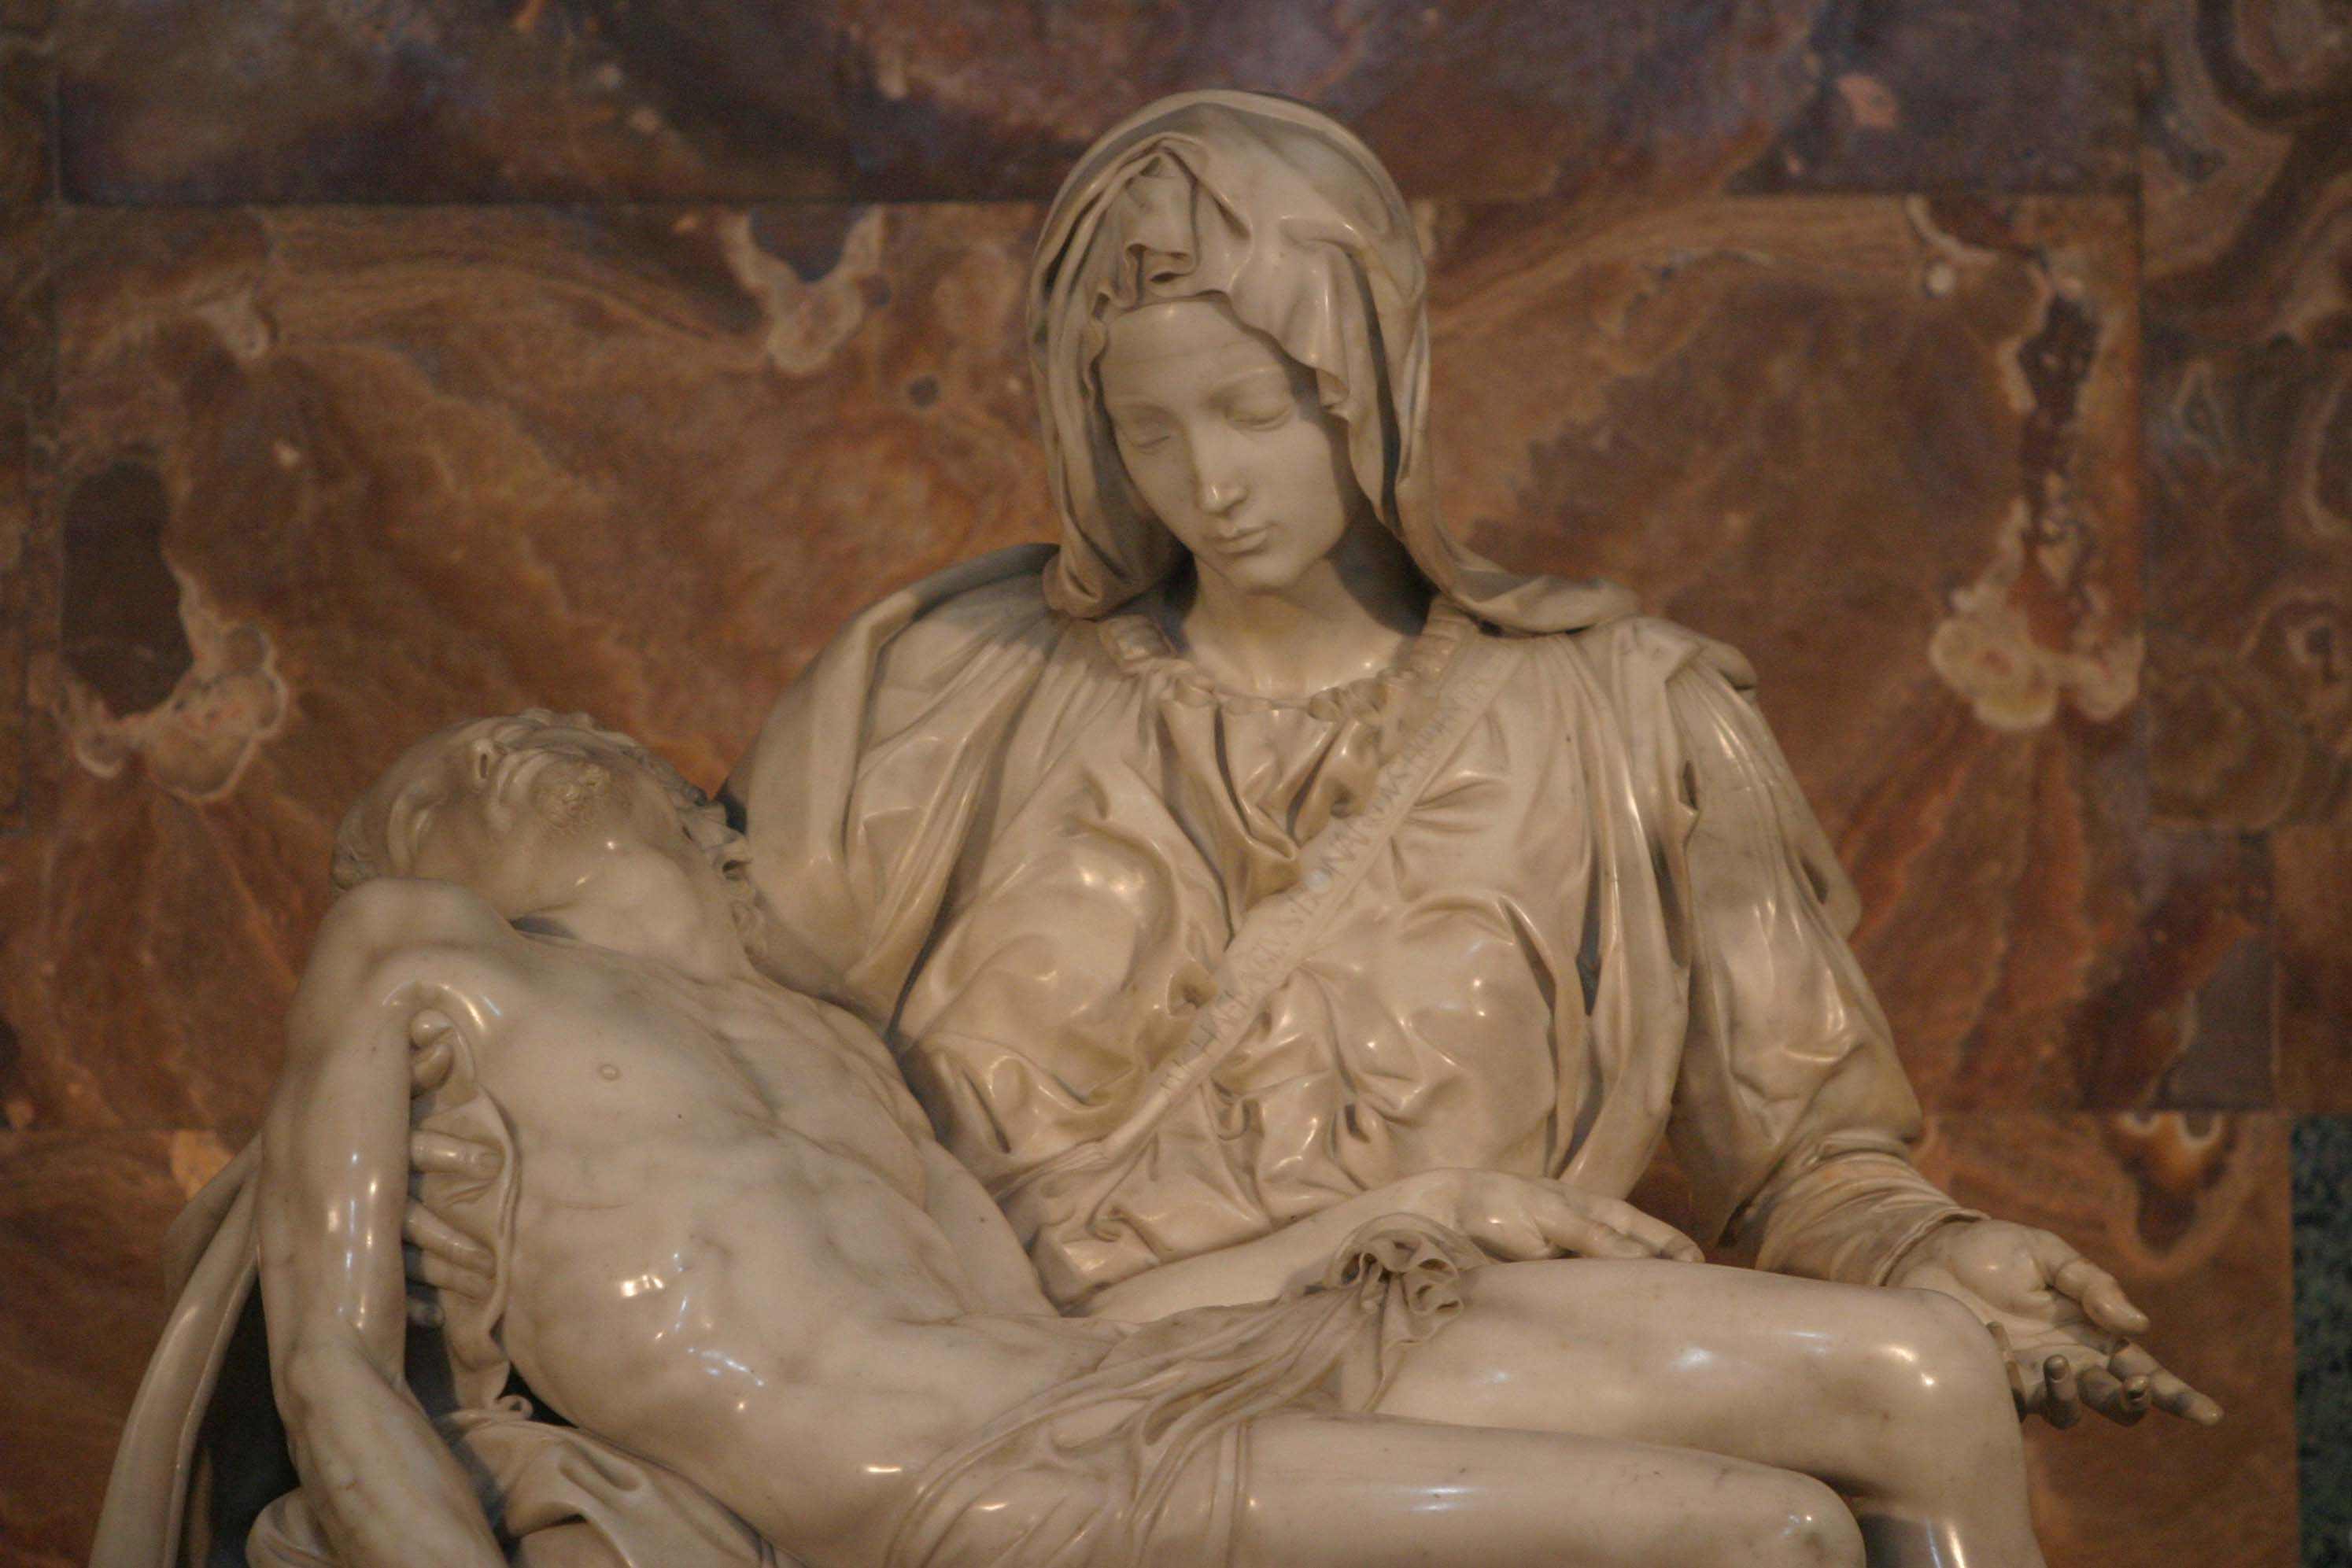 pieta by michelangelo Pieta by michelangelo buonarroti, one of the most highly finished works by  michelangelo.